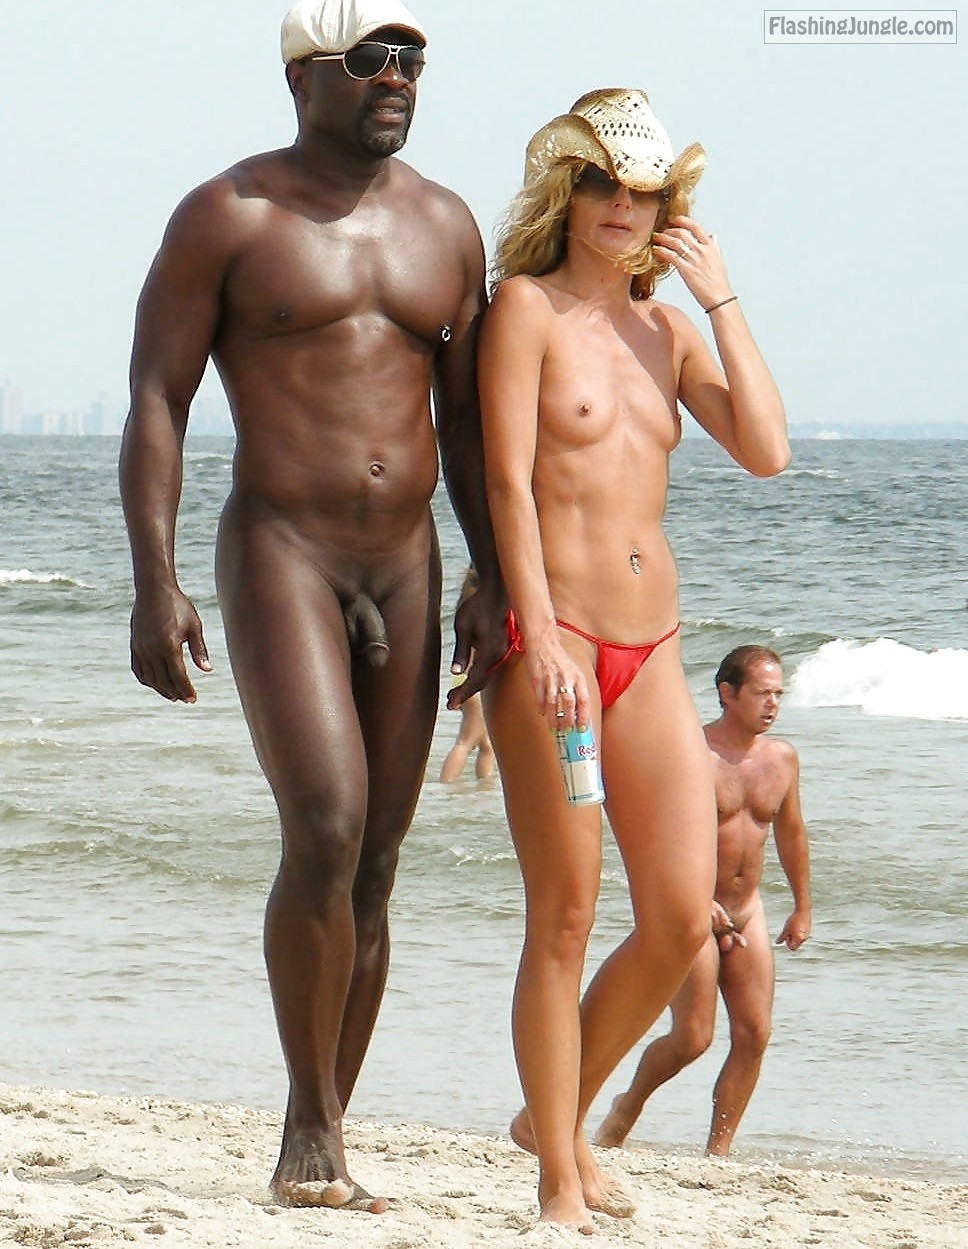 Naked Black Guy And Topless Blonde Nude Beach Pics, Voyeur -8231